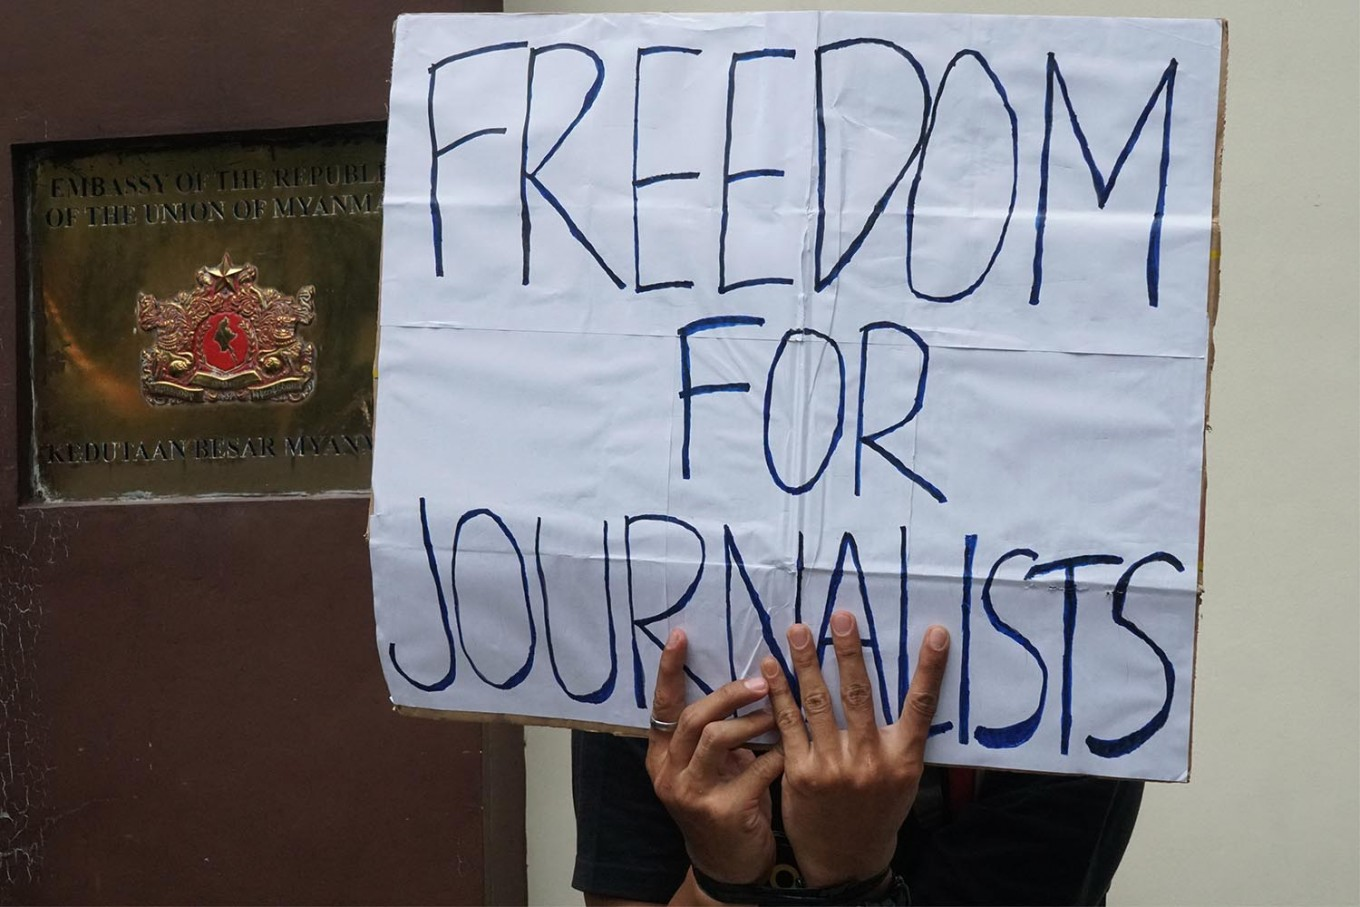 Media labor unions needed more than ever in precarious times: Journalists